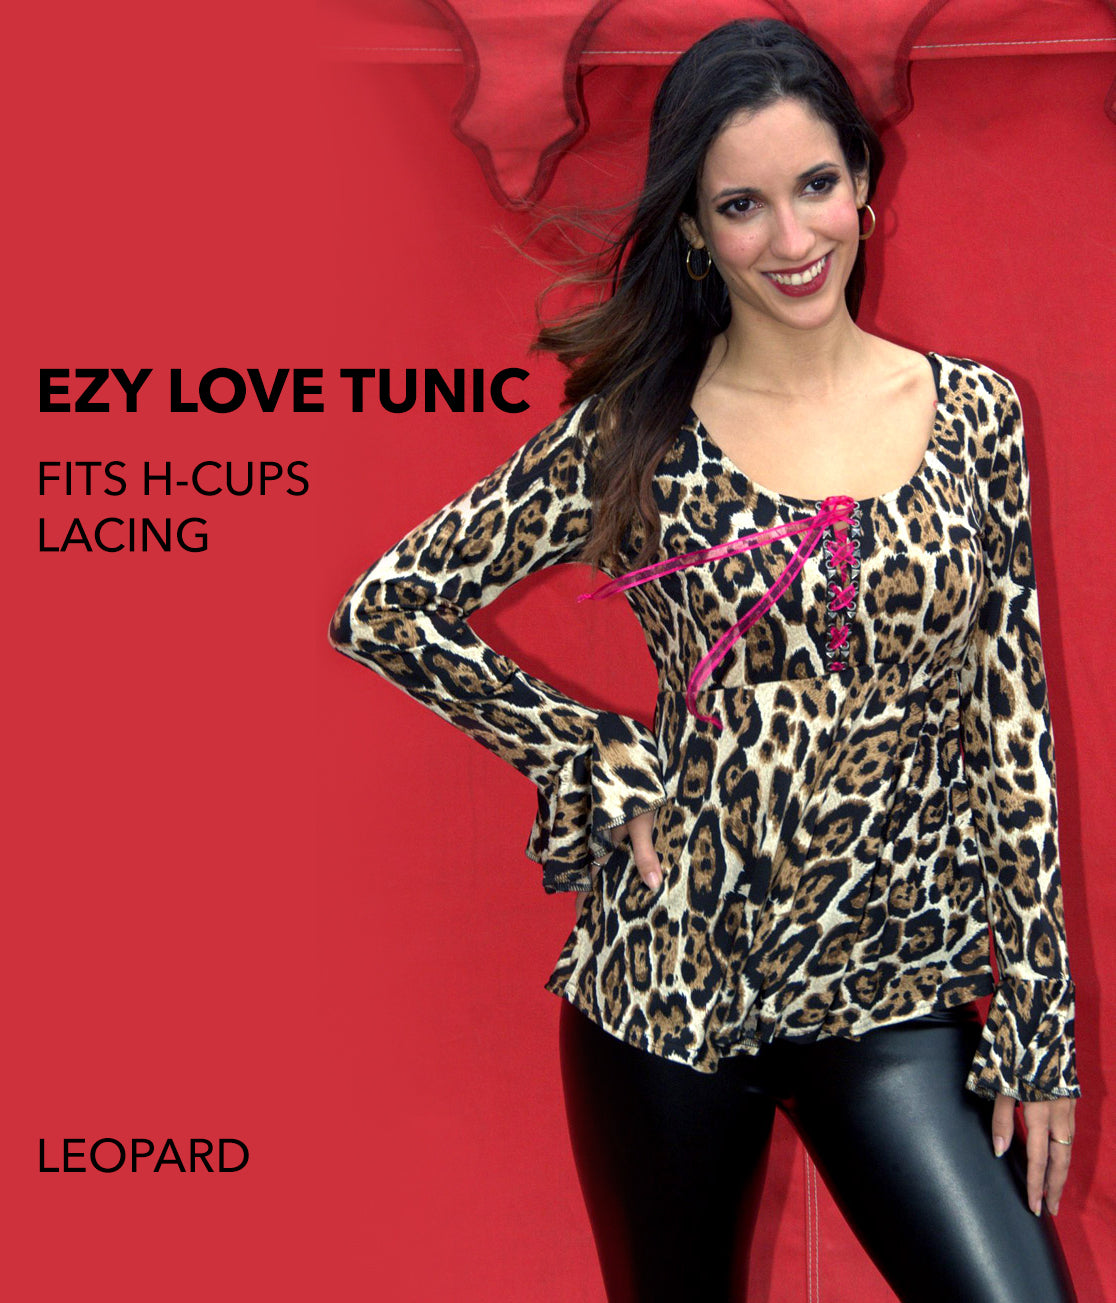 Ezy Love Tunic Top